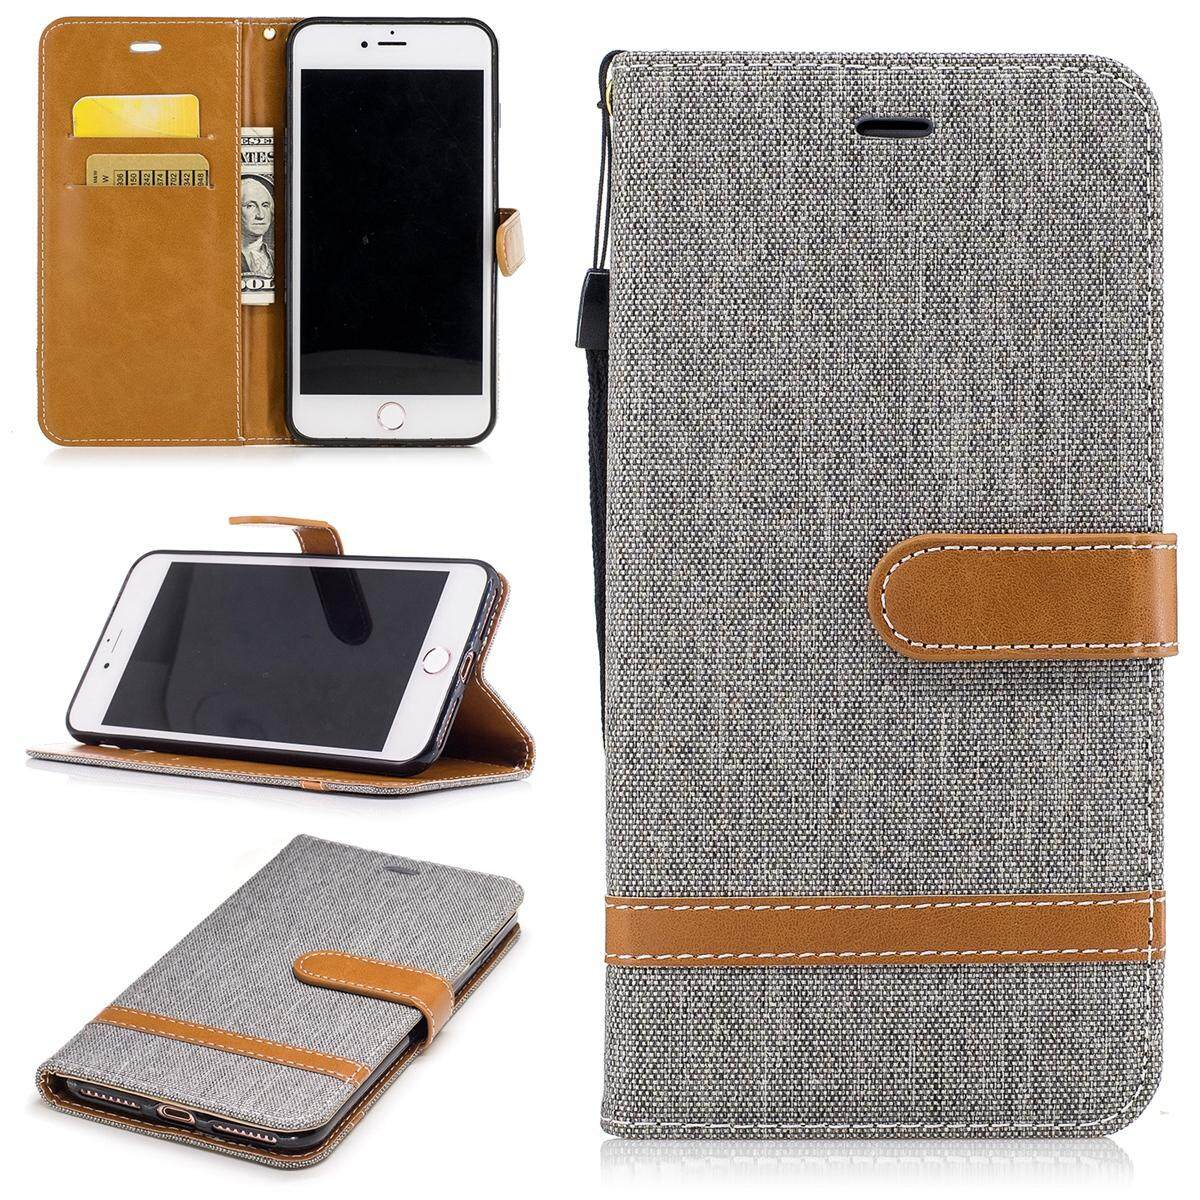 Moonmini Case for iPhone 7 Plus / iPhone 8 Plus Jeans Surface PU Leather Wallet Case